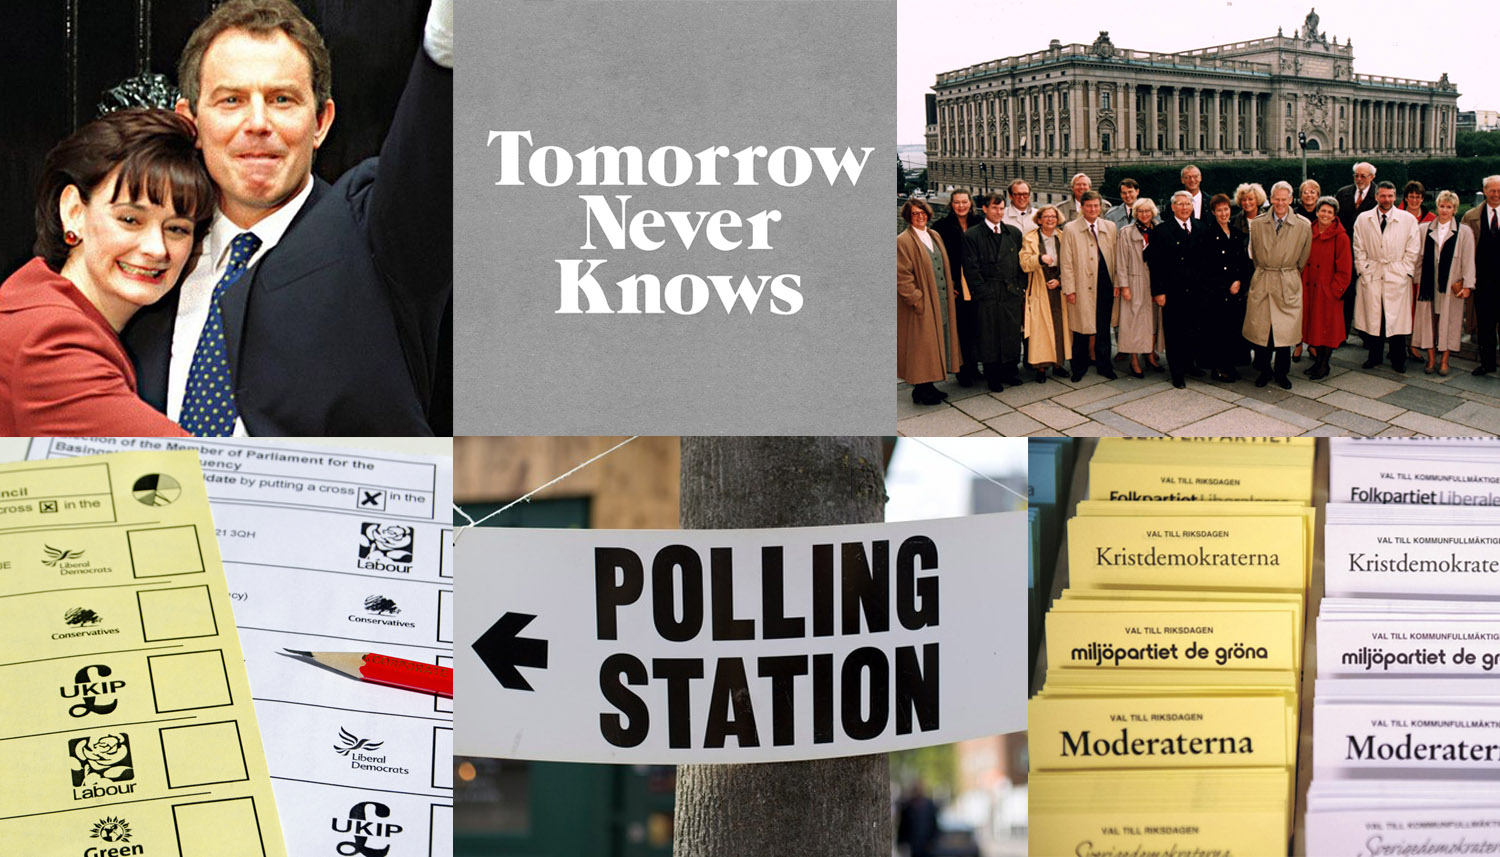 Images (CW): Tony and Cherie Blair in front of 10 Downing Street //  logo by @3Dperson  // Ingvar Carlsson's gender equal 1994 government // Swedish election ballots // polling station signage // British election ballots